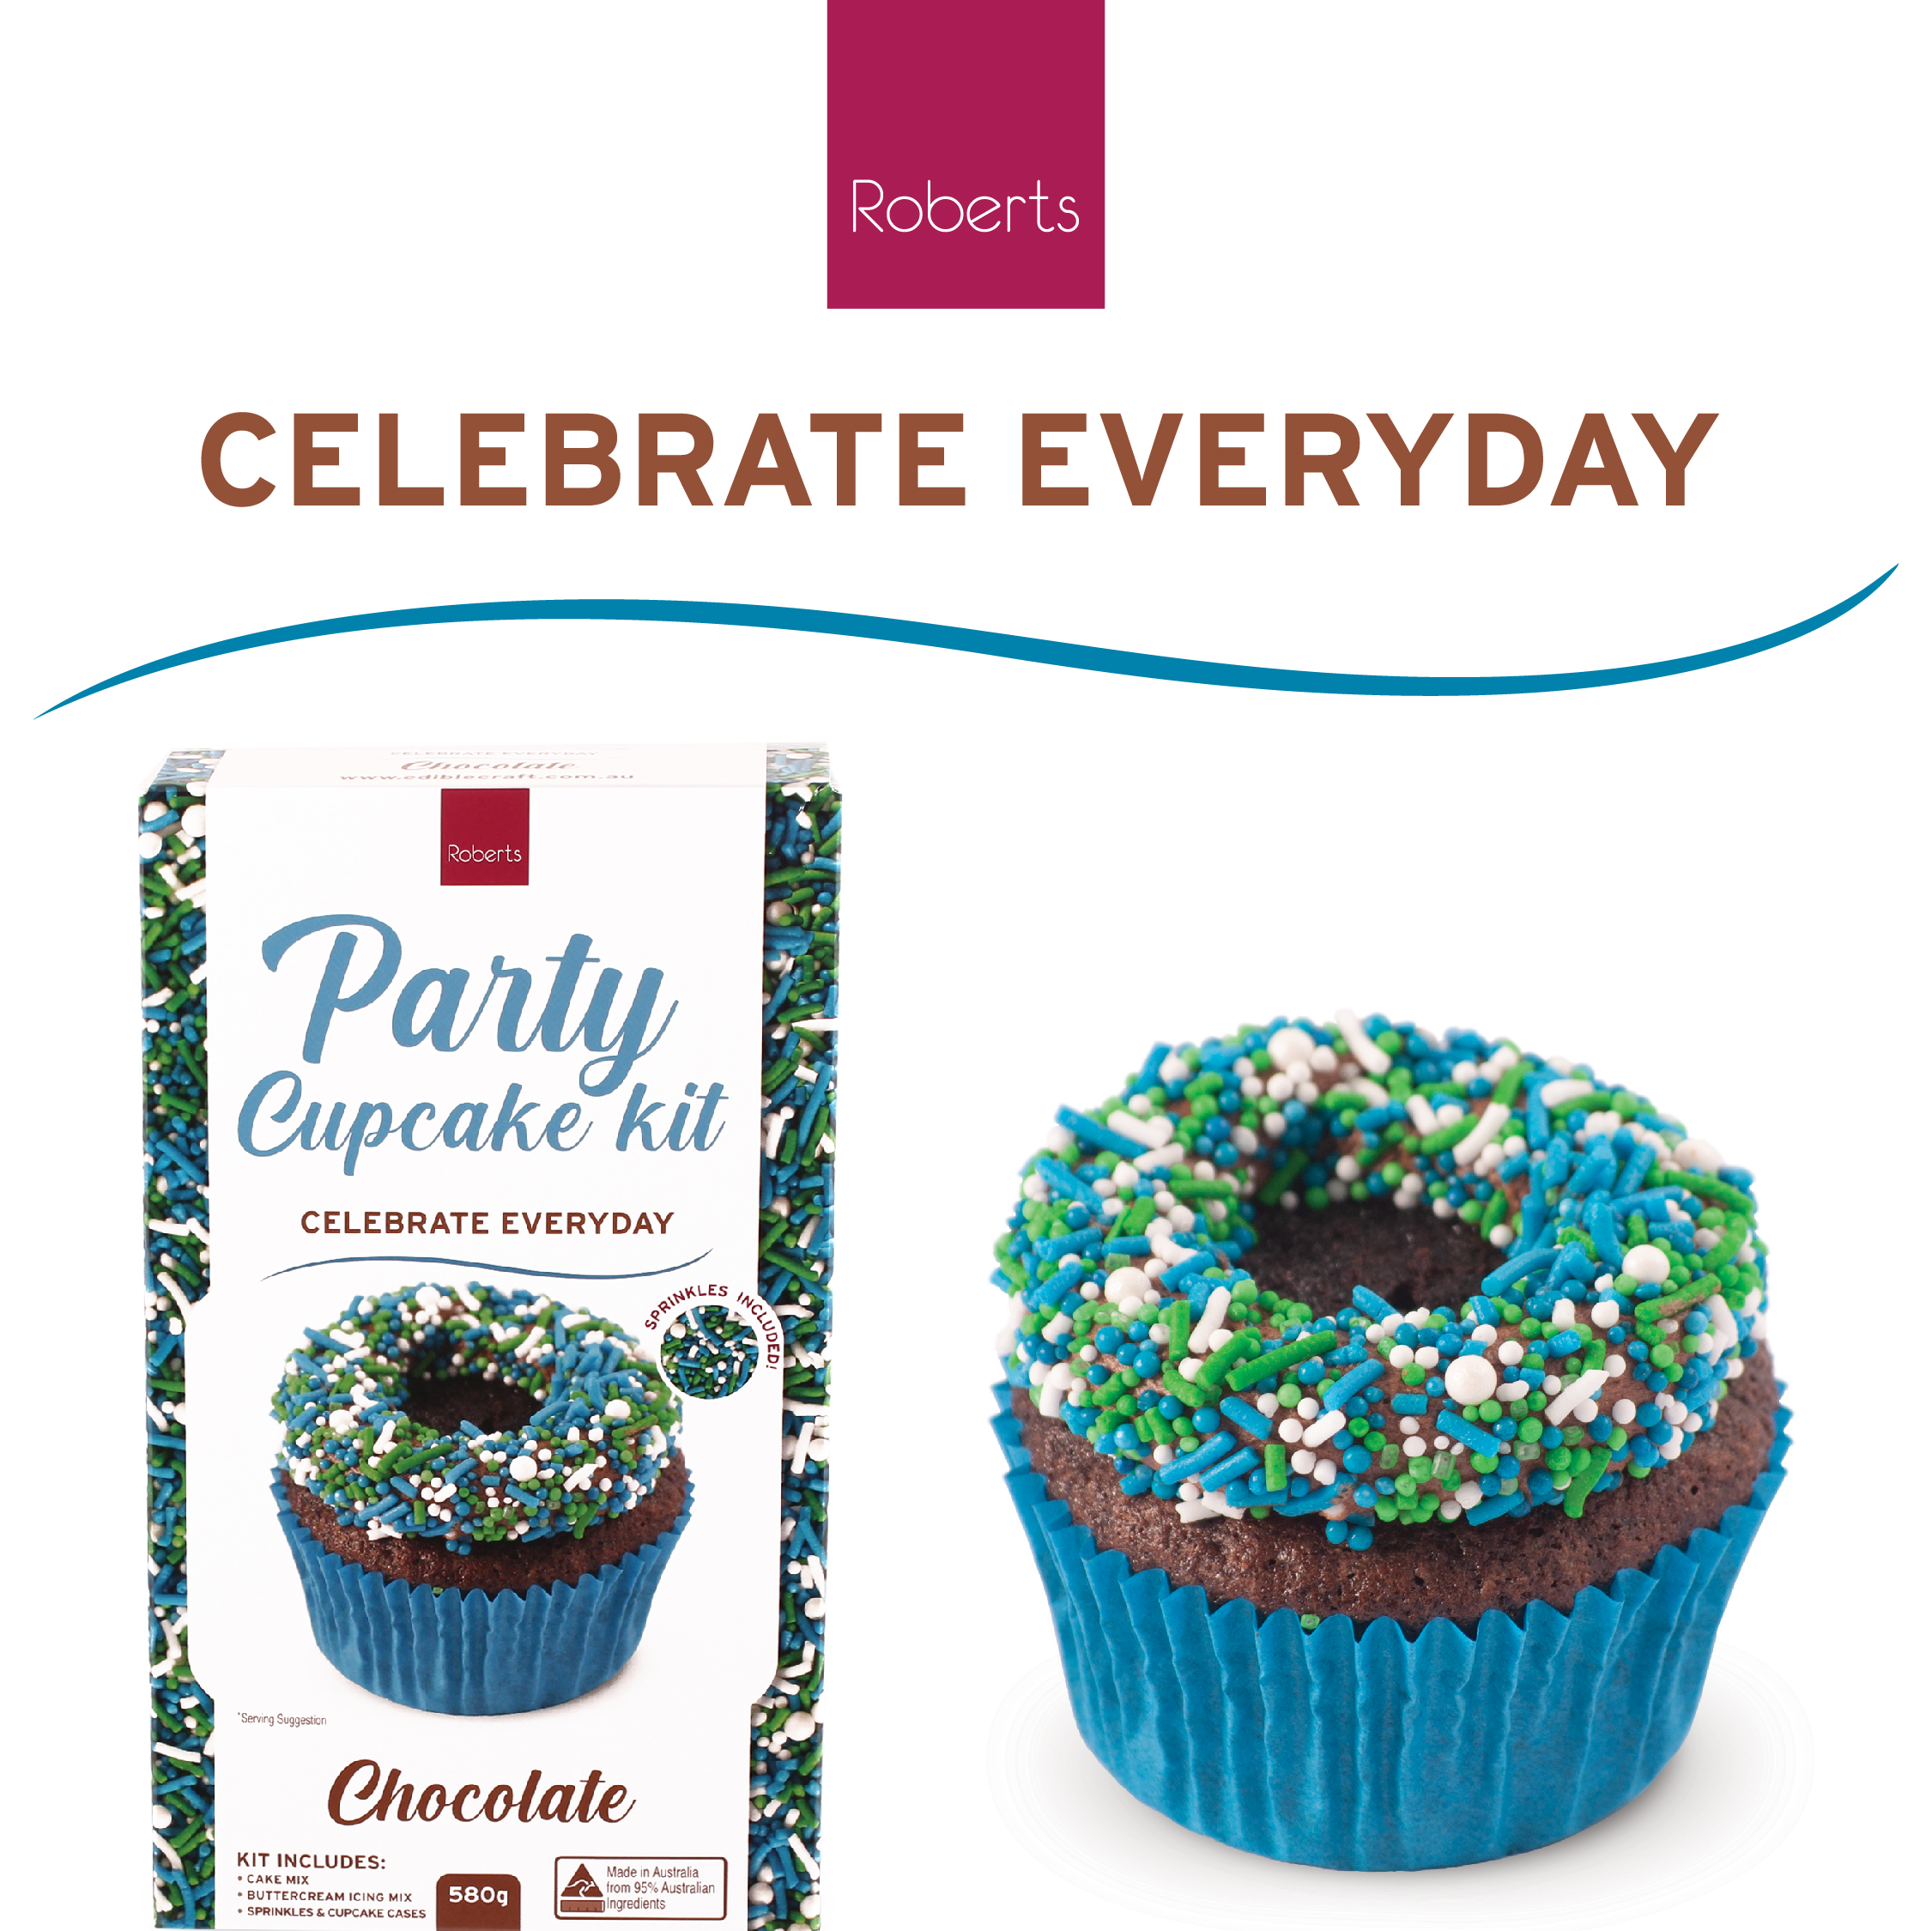 instagram-chocolate-cupcake-party-cake-kit-front-01.jpg